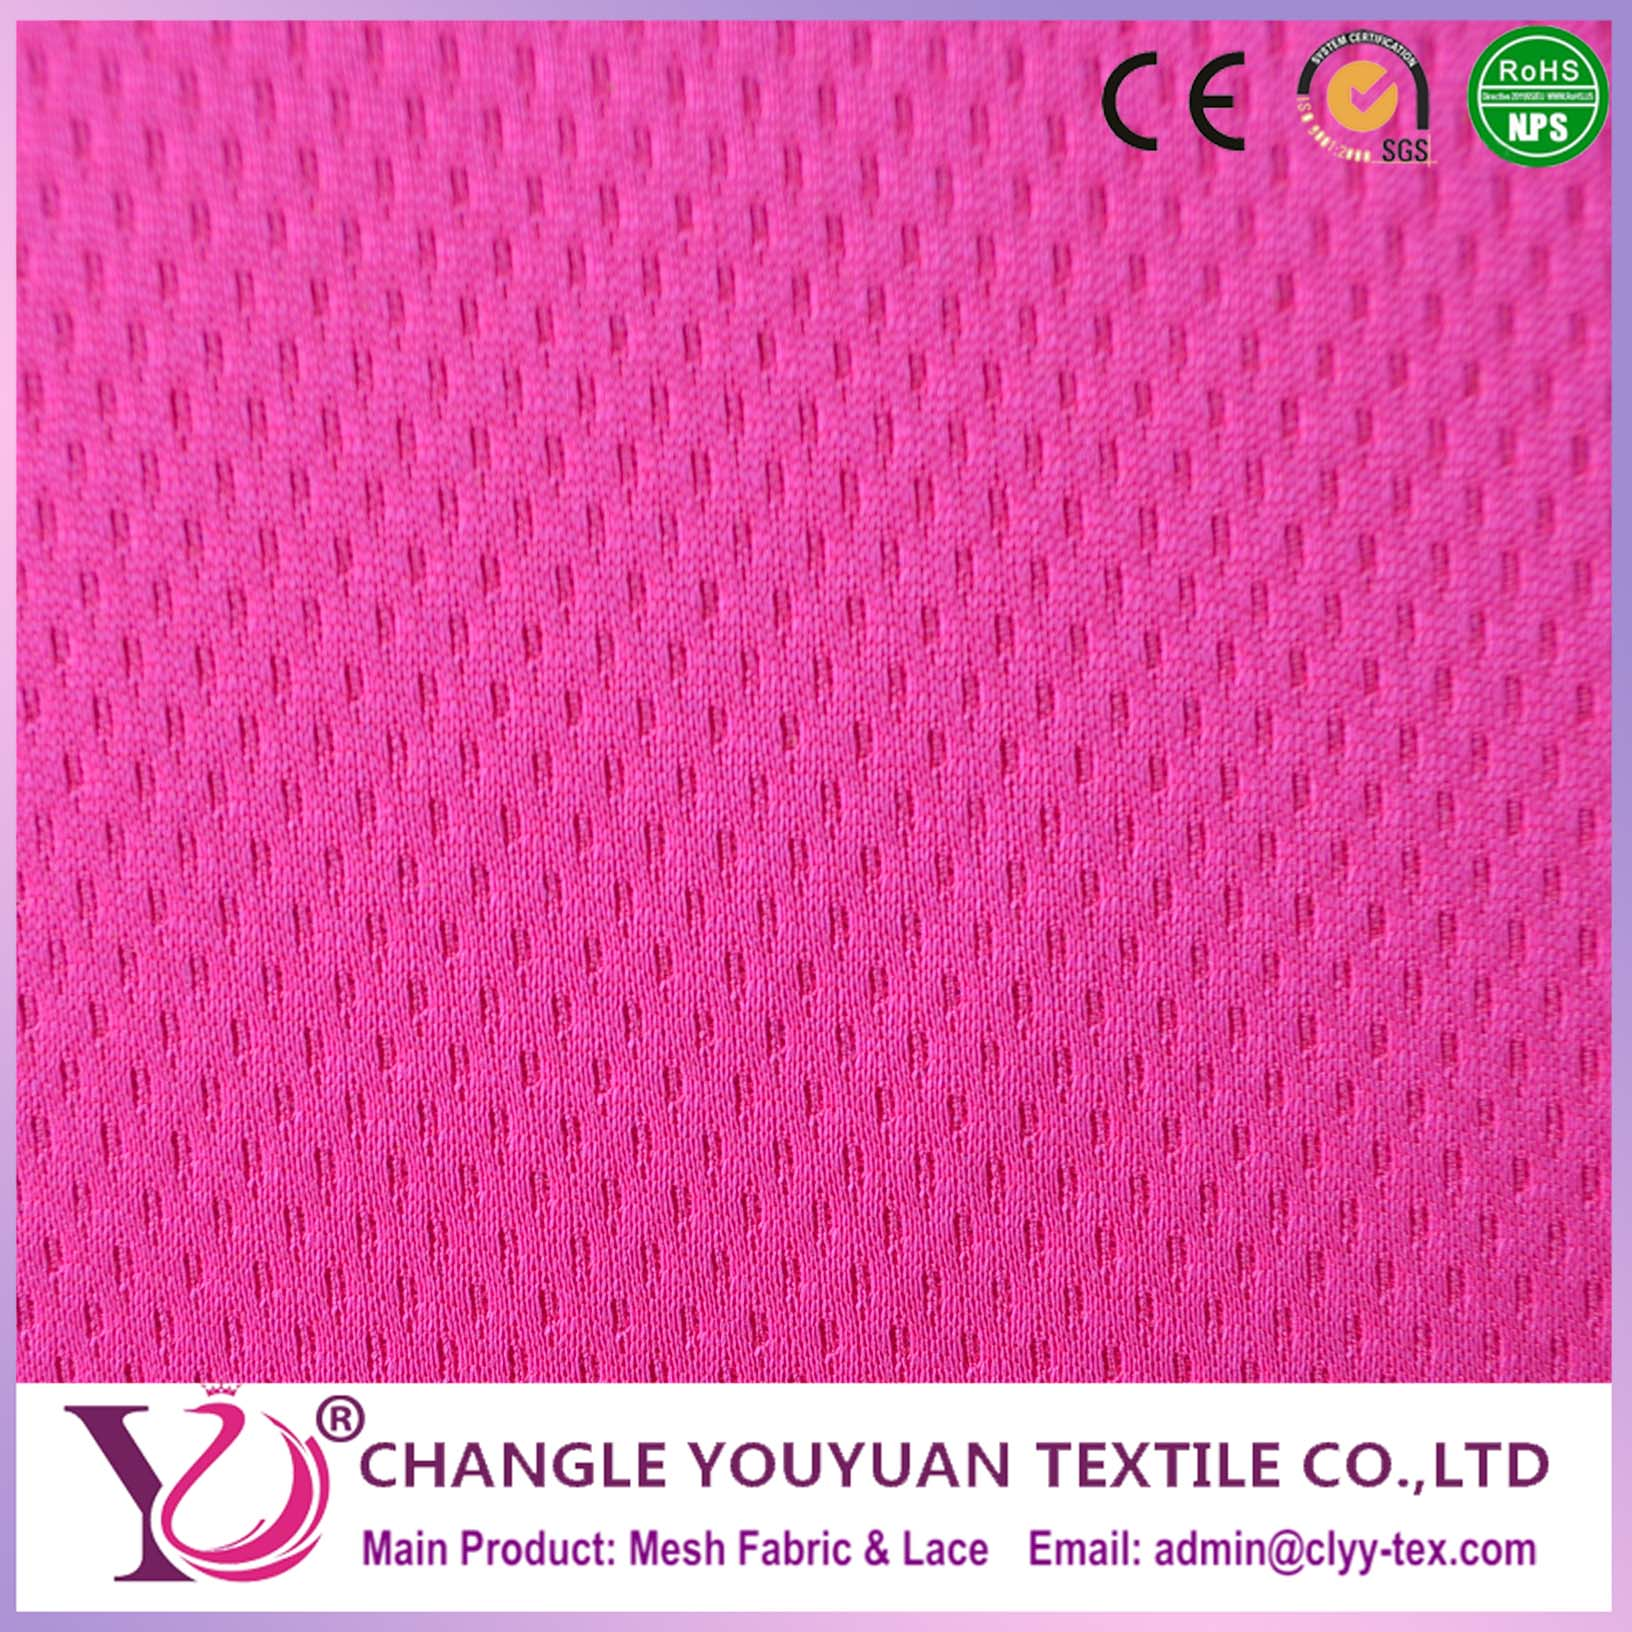 Sportswear Fabric Dri Fit Eyelet 100 Polyester Single Jersey Knit Fabric